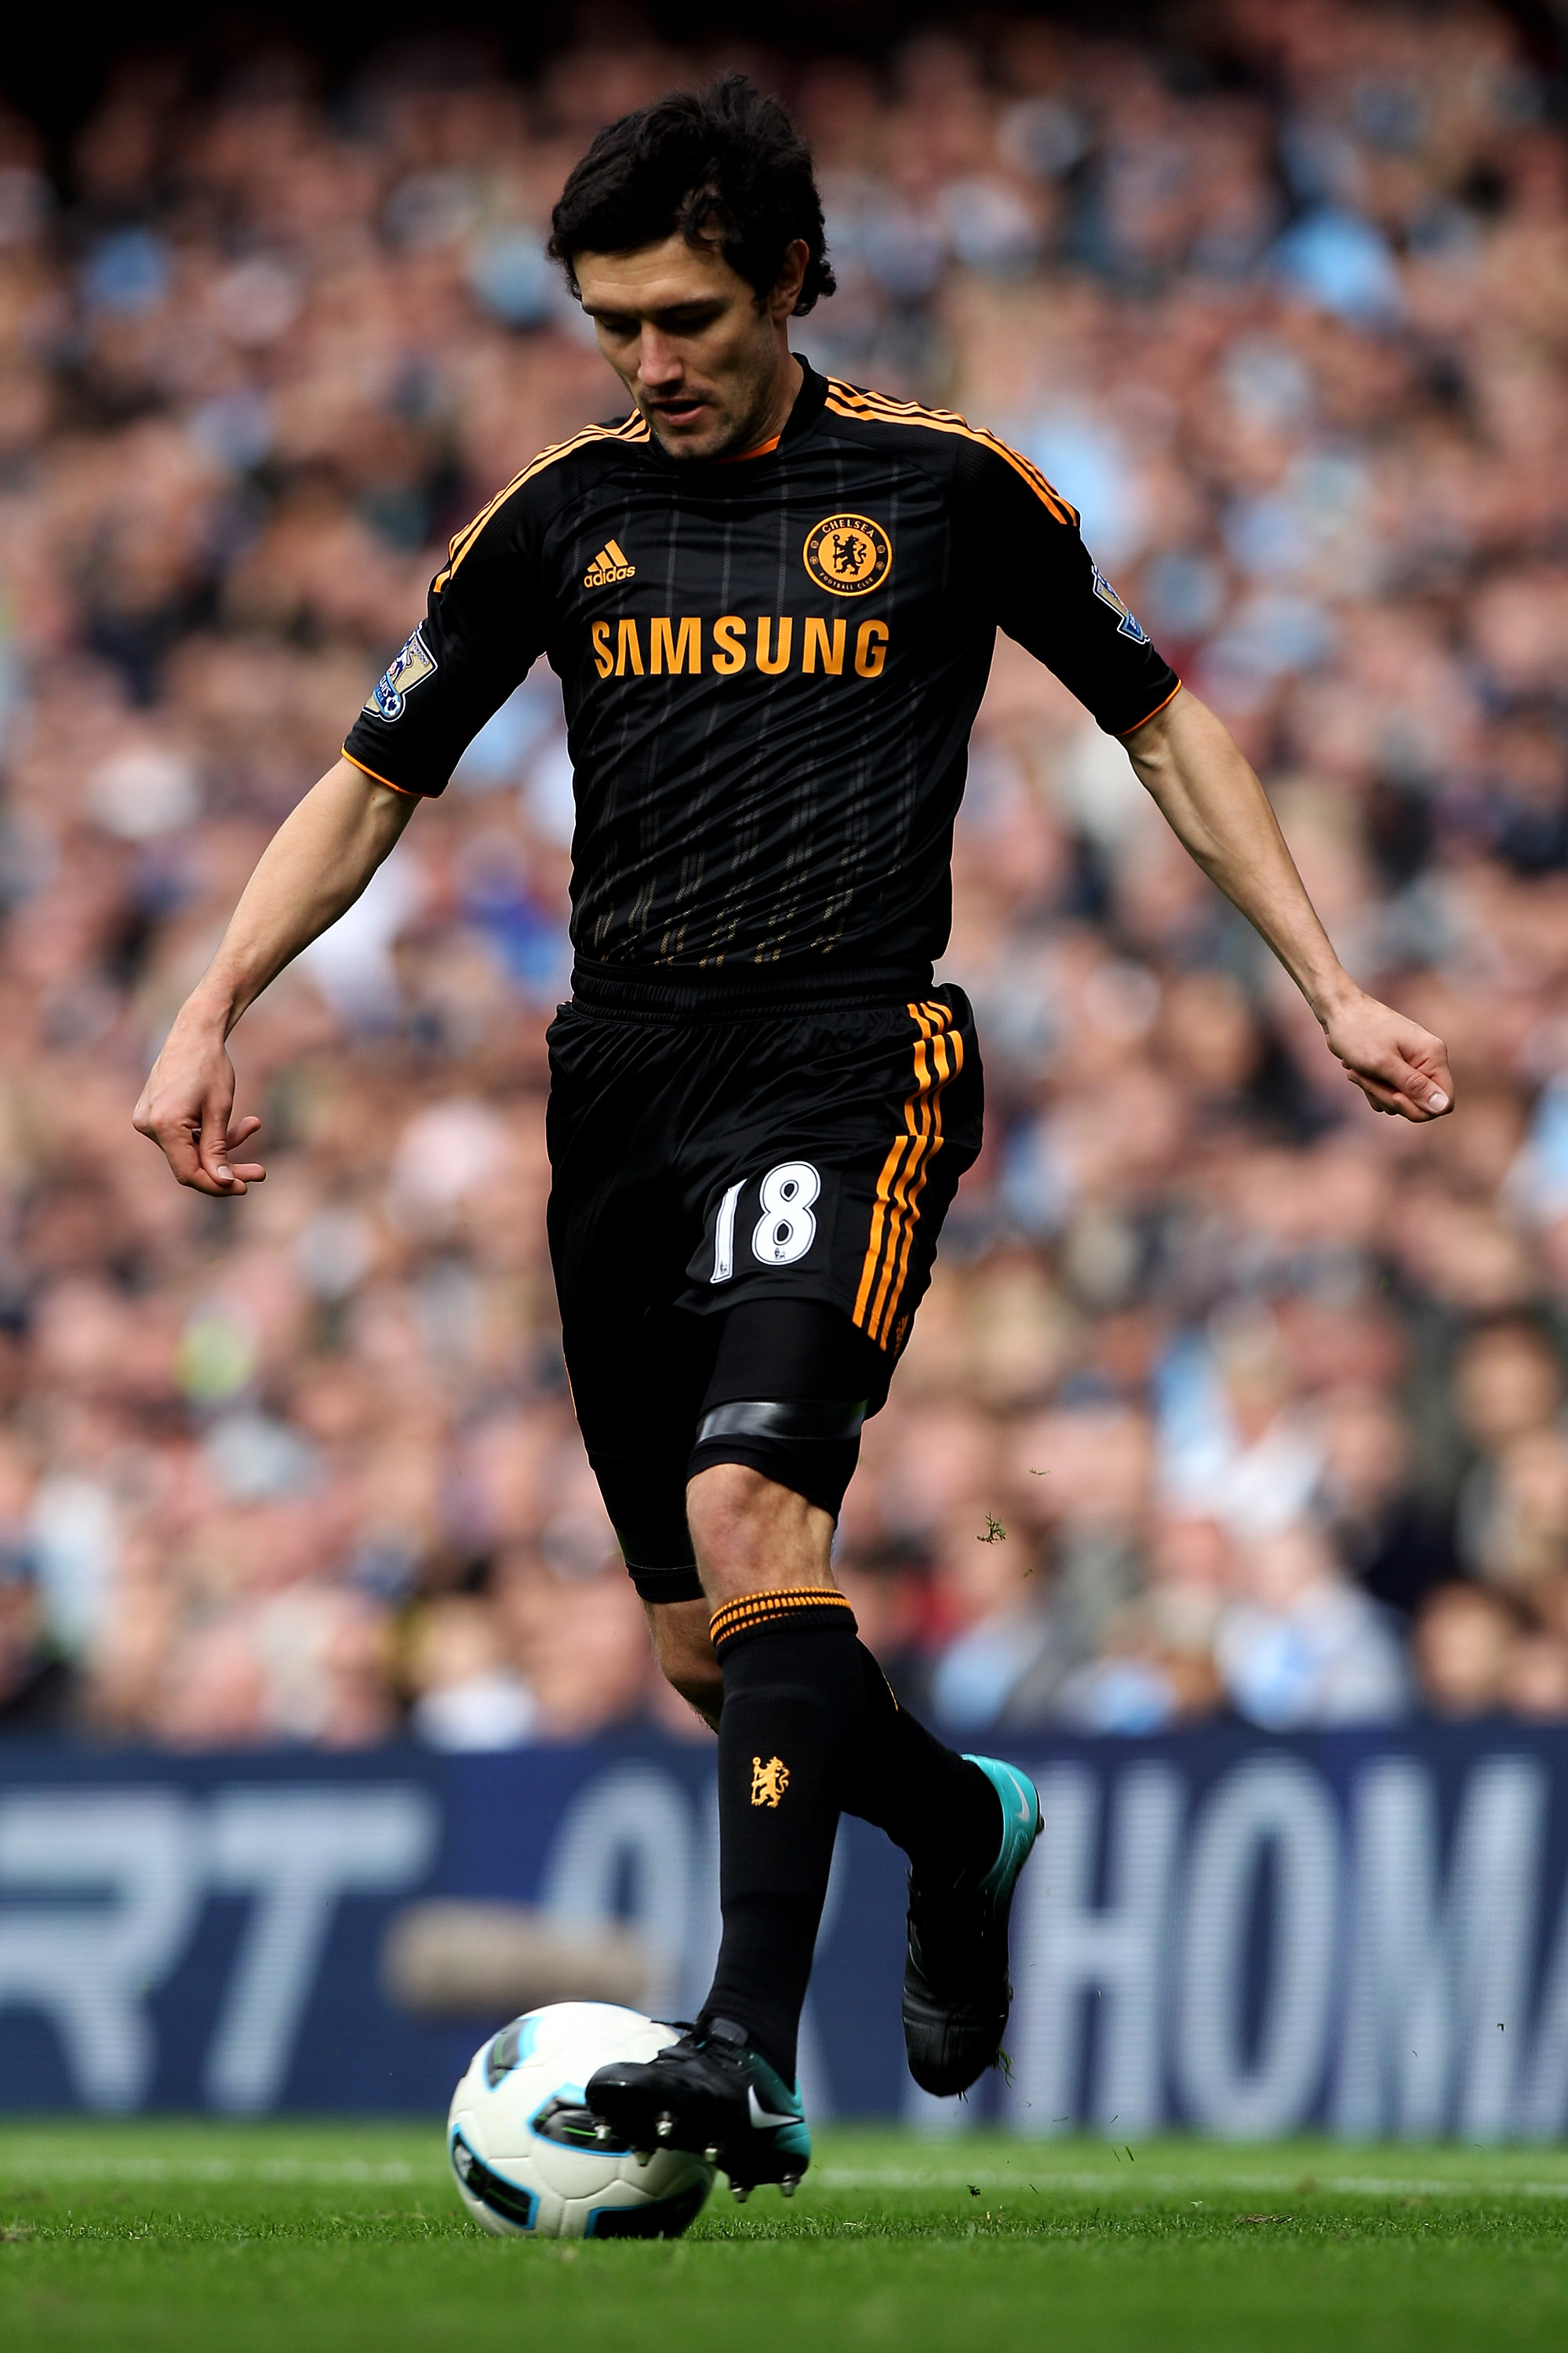 MANCHESTER, ENGLAND - SEPTEMBER 25:   Yury Zhirkov of Chelsea in action during the Barclays Premier League match between Manchester City and Chelsea at the City of Manchester Stadium on September 25, 2010 in Manchester, England.  (Photo by Michael Steele/